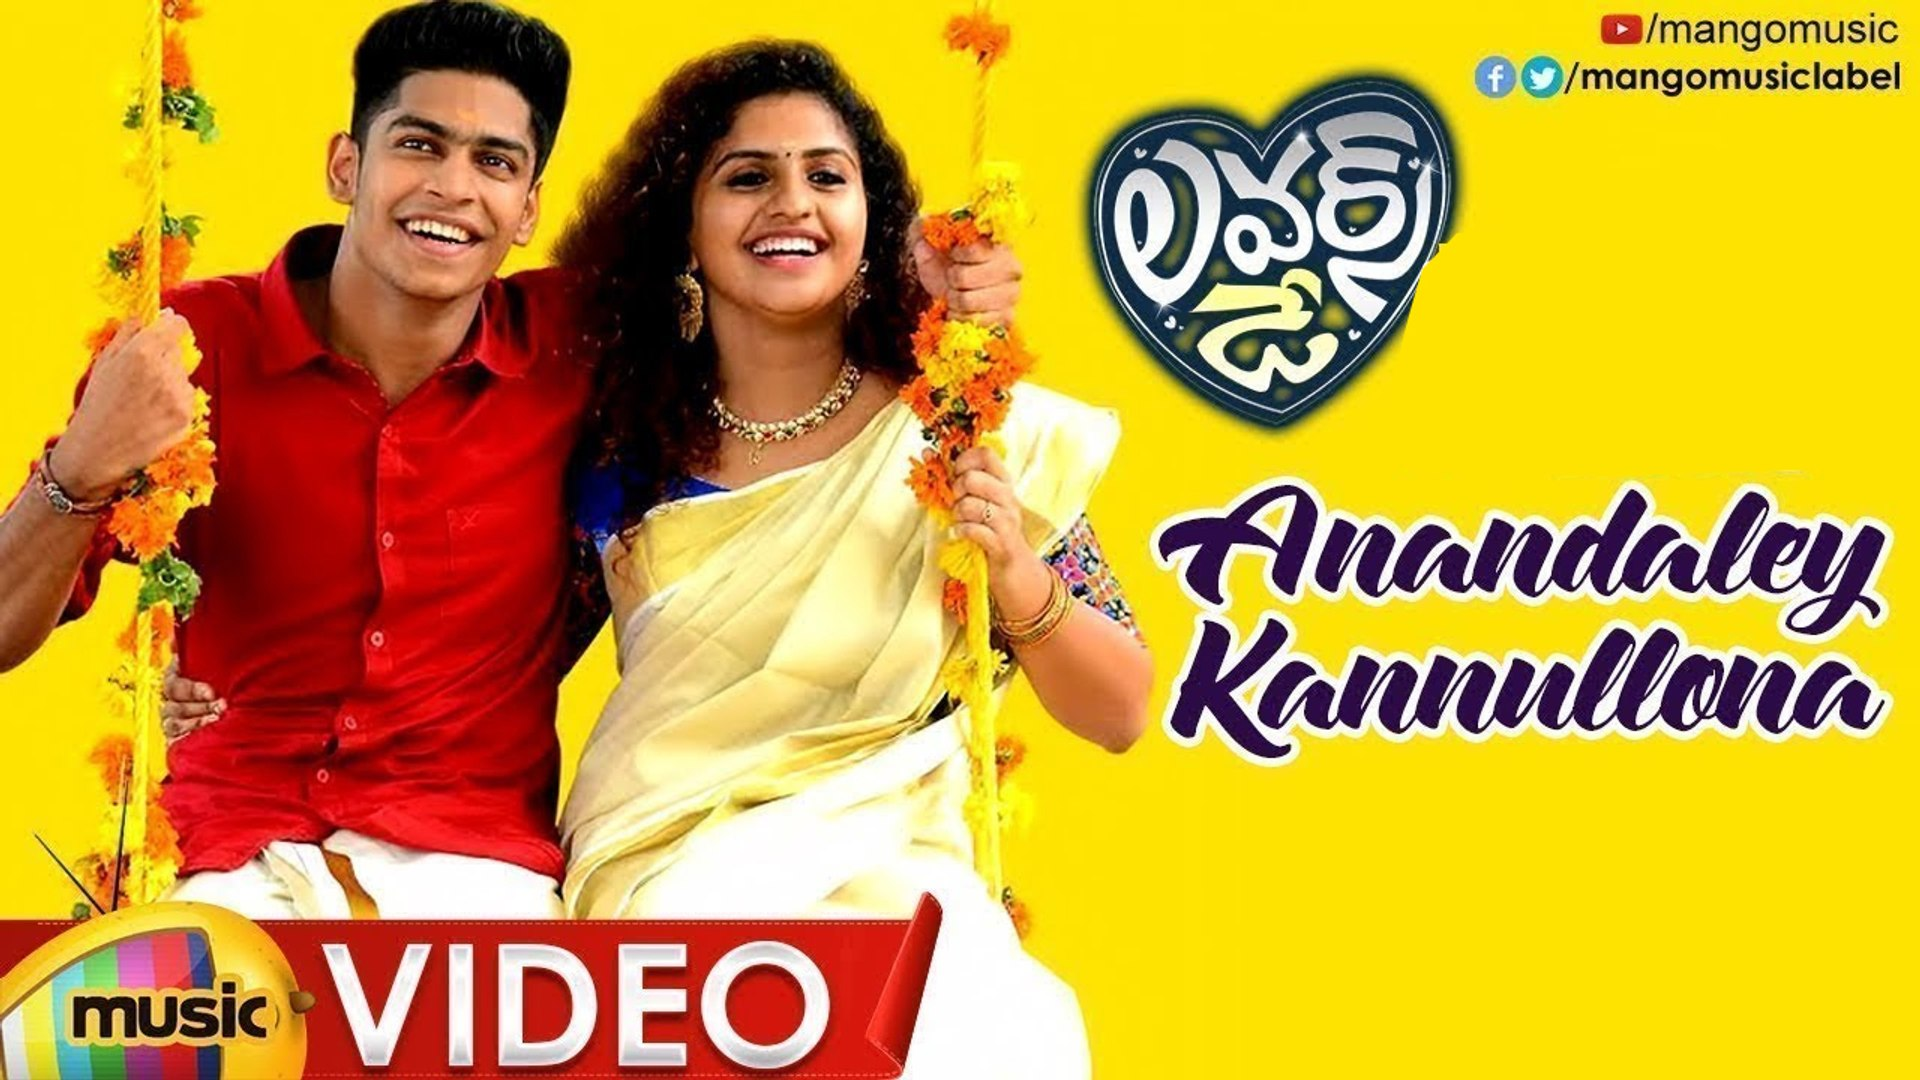 Priya Prakash Varrier Lovers Day Video Songs Anandaley Kannullona Full Video Song Shaan Rahman Omar Lulu A Guru Raj Ch Vinod Reddy Sukhibava Cinemas Oru Adaar Love Mango Music Video Dailymotion